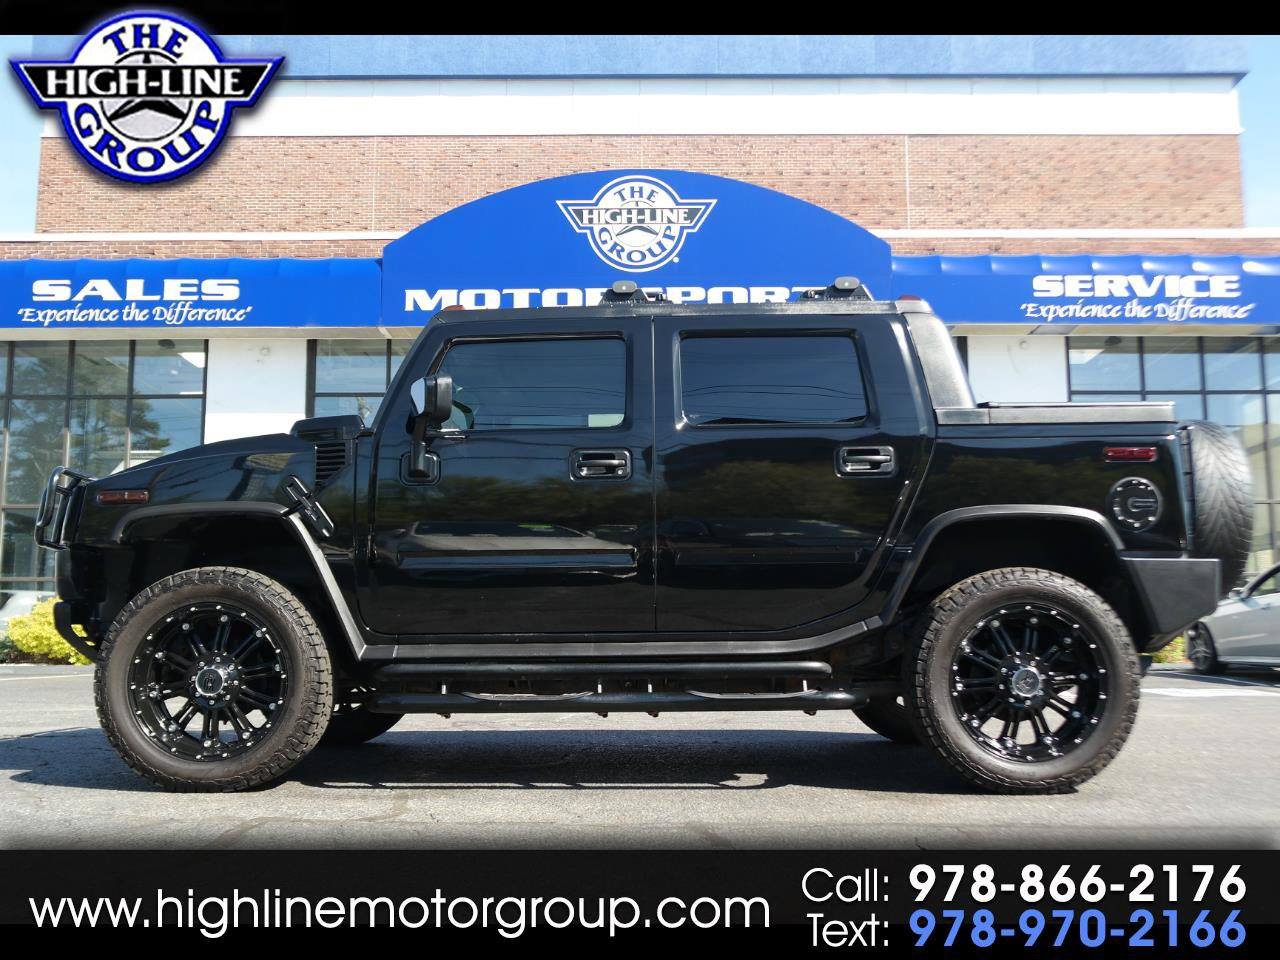 HUMMER H8 for Sale in Boston, MA 08109 - Autotrader   hummer h2 for sale in ma